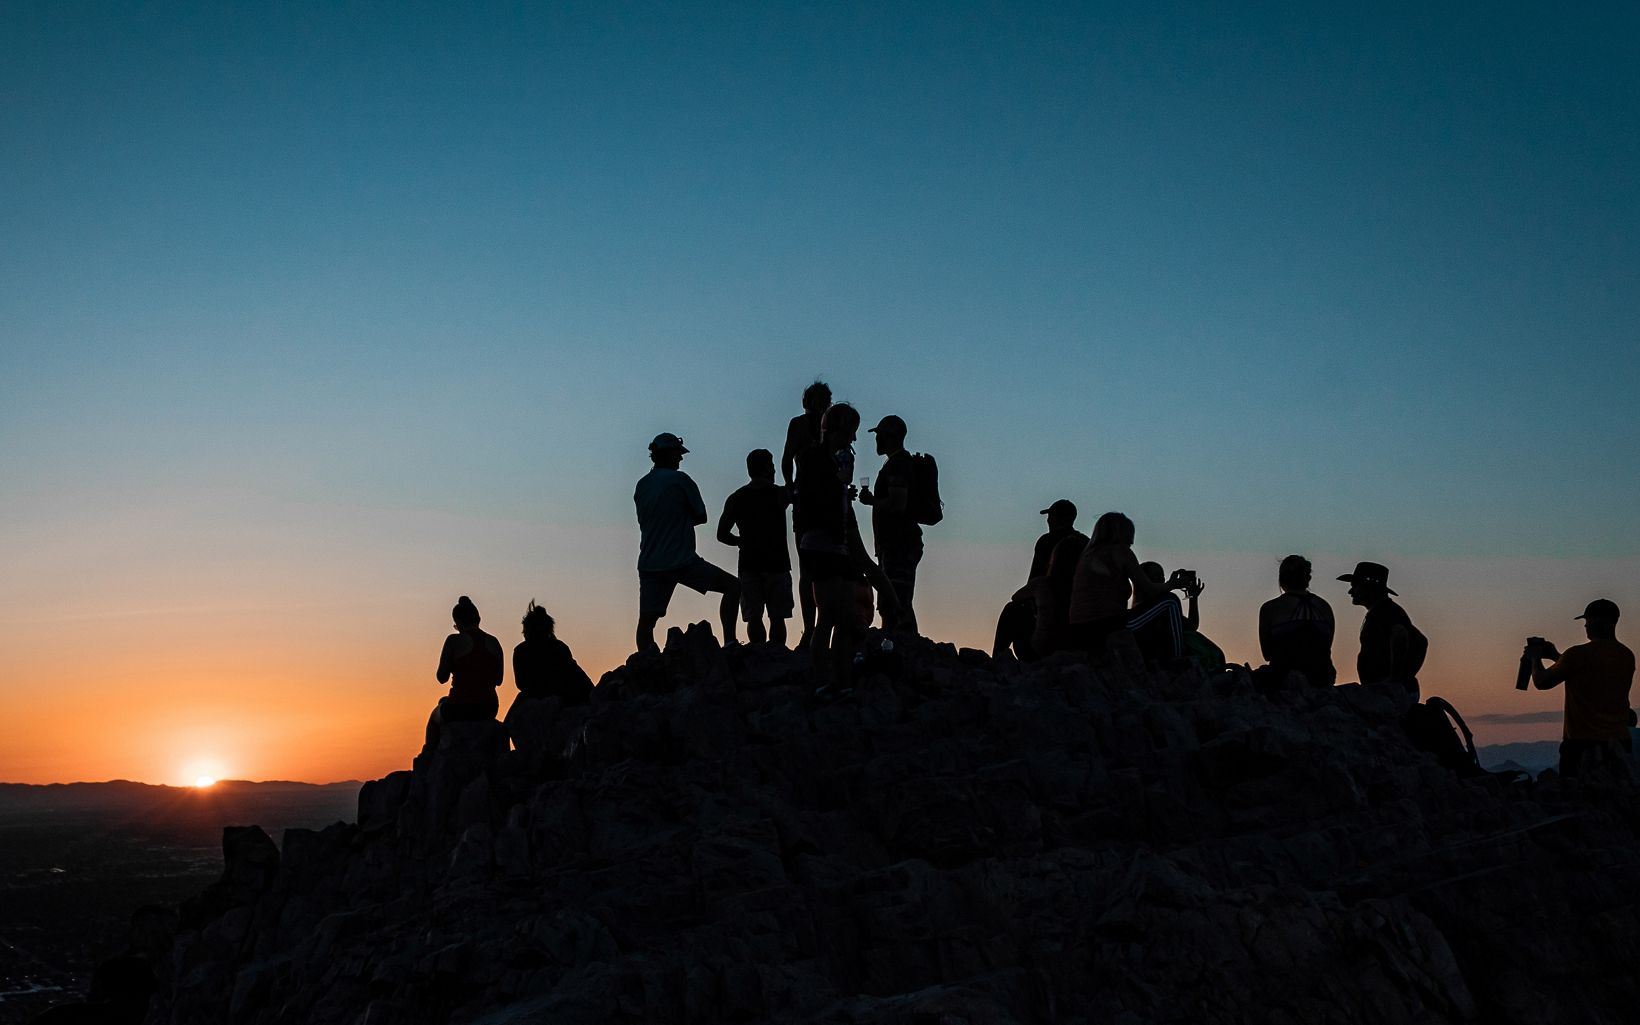 Several groups of people on a hillside silhouetted against a dark blue sky with an orange-pink sun setting on the lefthand side of the field of view.